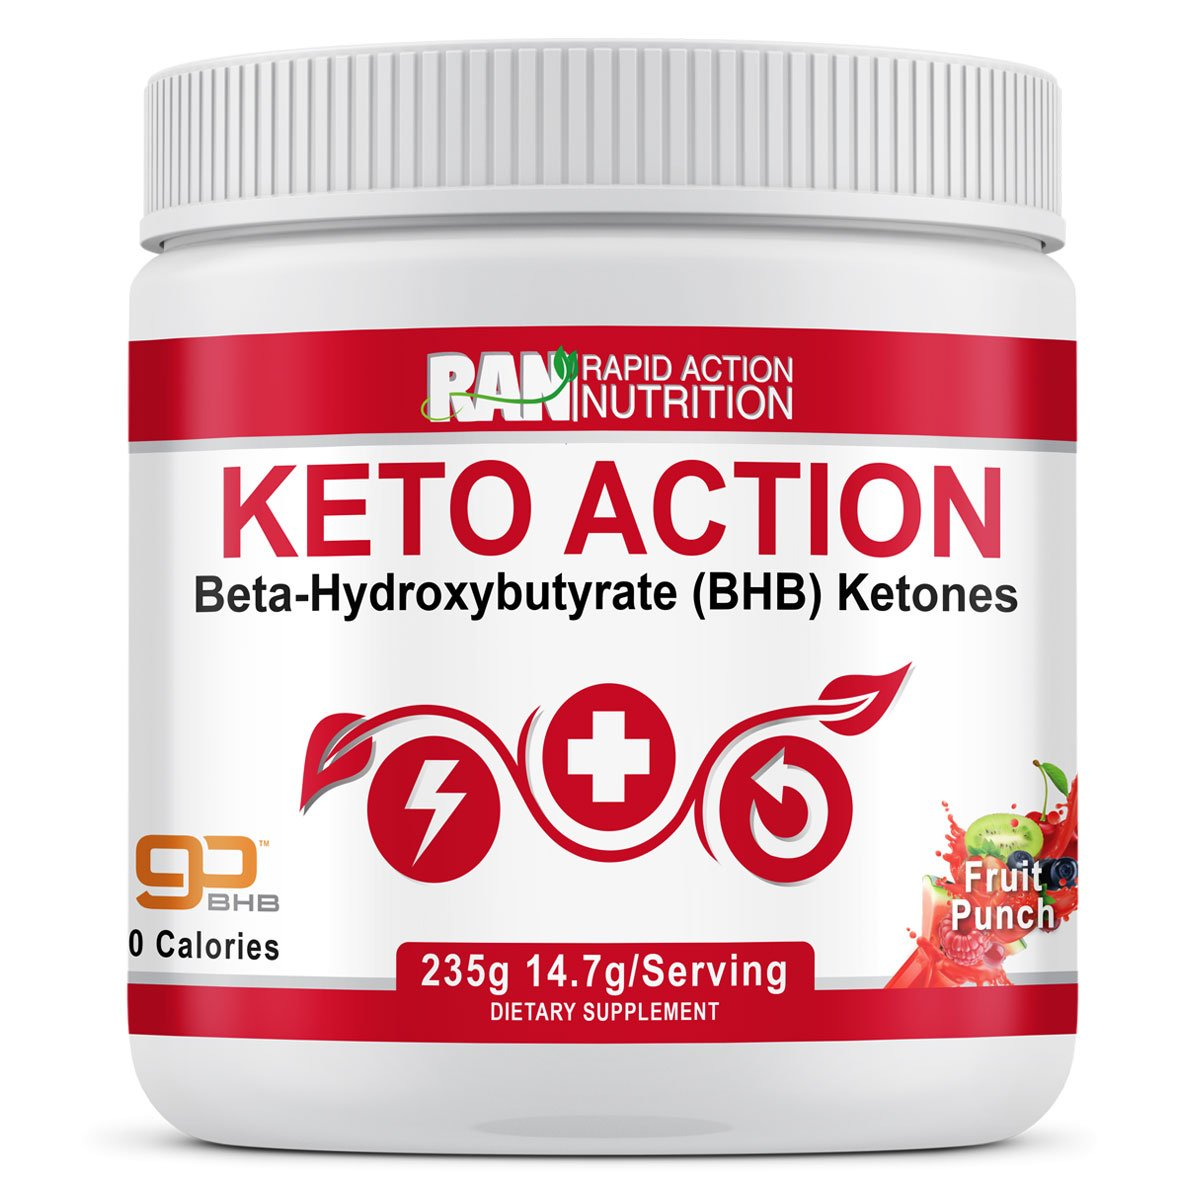 Description Ingredients Why Buy From Us Delivery and ReturnsKeto BHB (Beta-Hydroxybutyrate) isan exogenousketone supplement. Our bodies naturally produceketones and BHB is 1 type.Exogenous means that it is created outside of one's body. High levels of ketones put you in a state of ketosis which is when your body burns fat for fuel instead of carbohydrates.We can naturally get to ketosis by depriving the body of carbs. When you exercise in ketosis, you will increase the body fat you burn and also preserve your muscle tissue. Many people who are trying to lose weight will combine ketone supplements with their regular workout.Research also indicates that there are several other benefits from Keto BHB. Increased mental focus, more physical endurance and stabilized mood are some. It may also help with symptoms of epilepsy and diabetes.Before taking Keto BHB or any supplement, always talk with your physician first to ensure it will not interfere with any current prescription medicines or tr